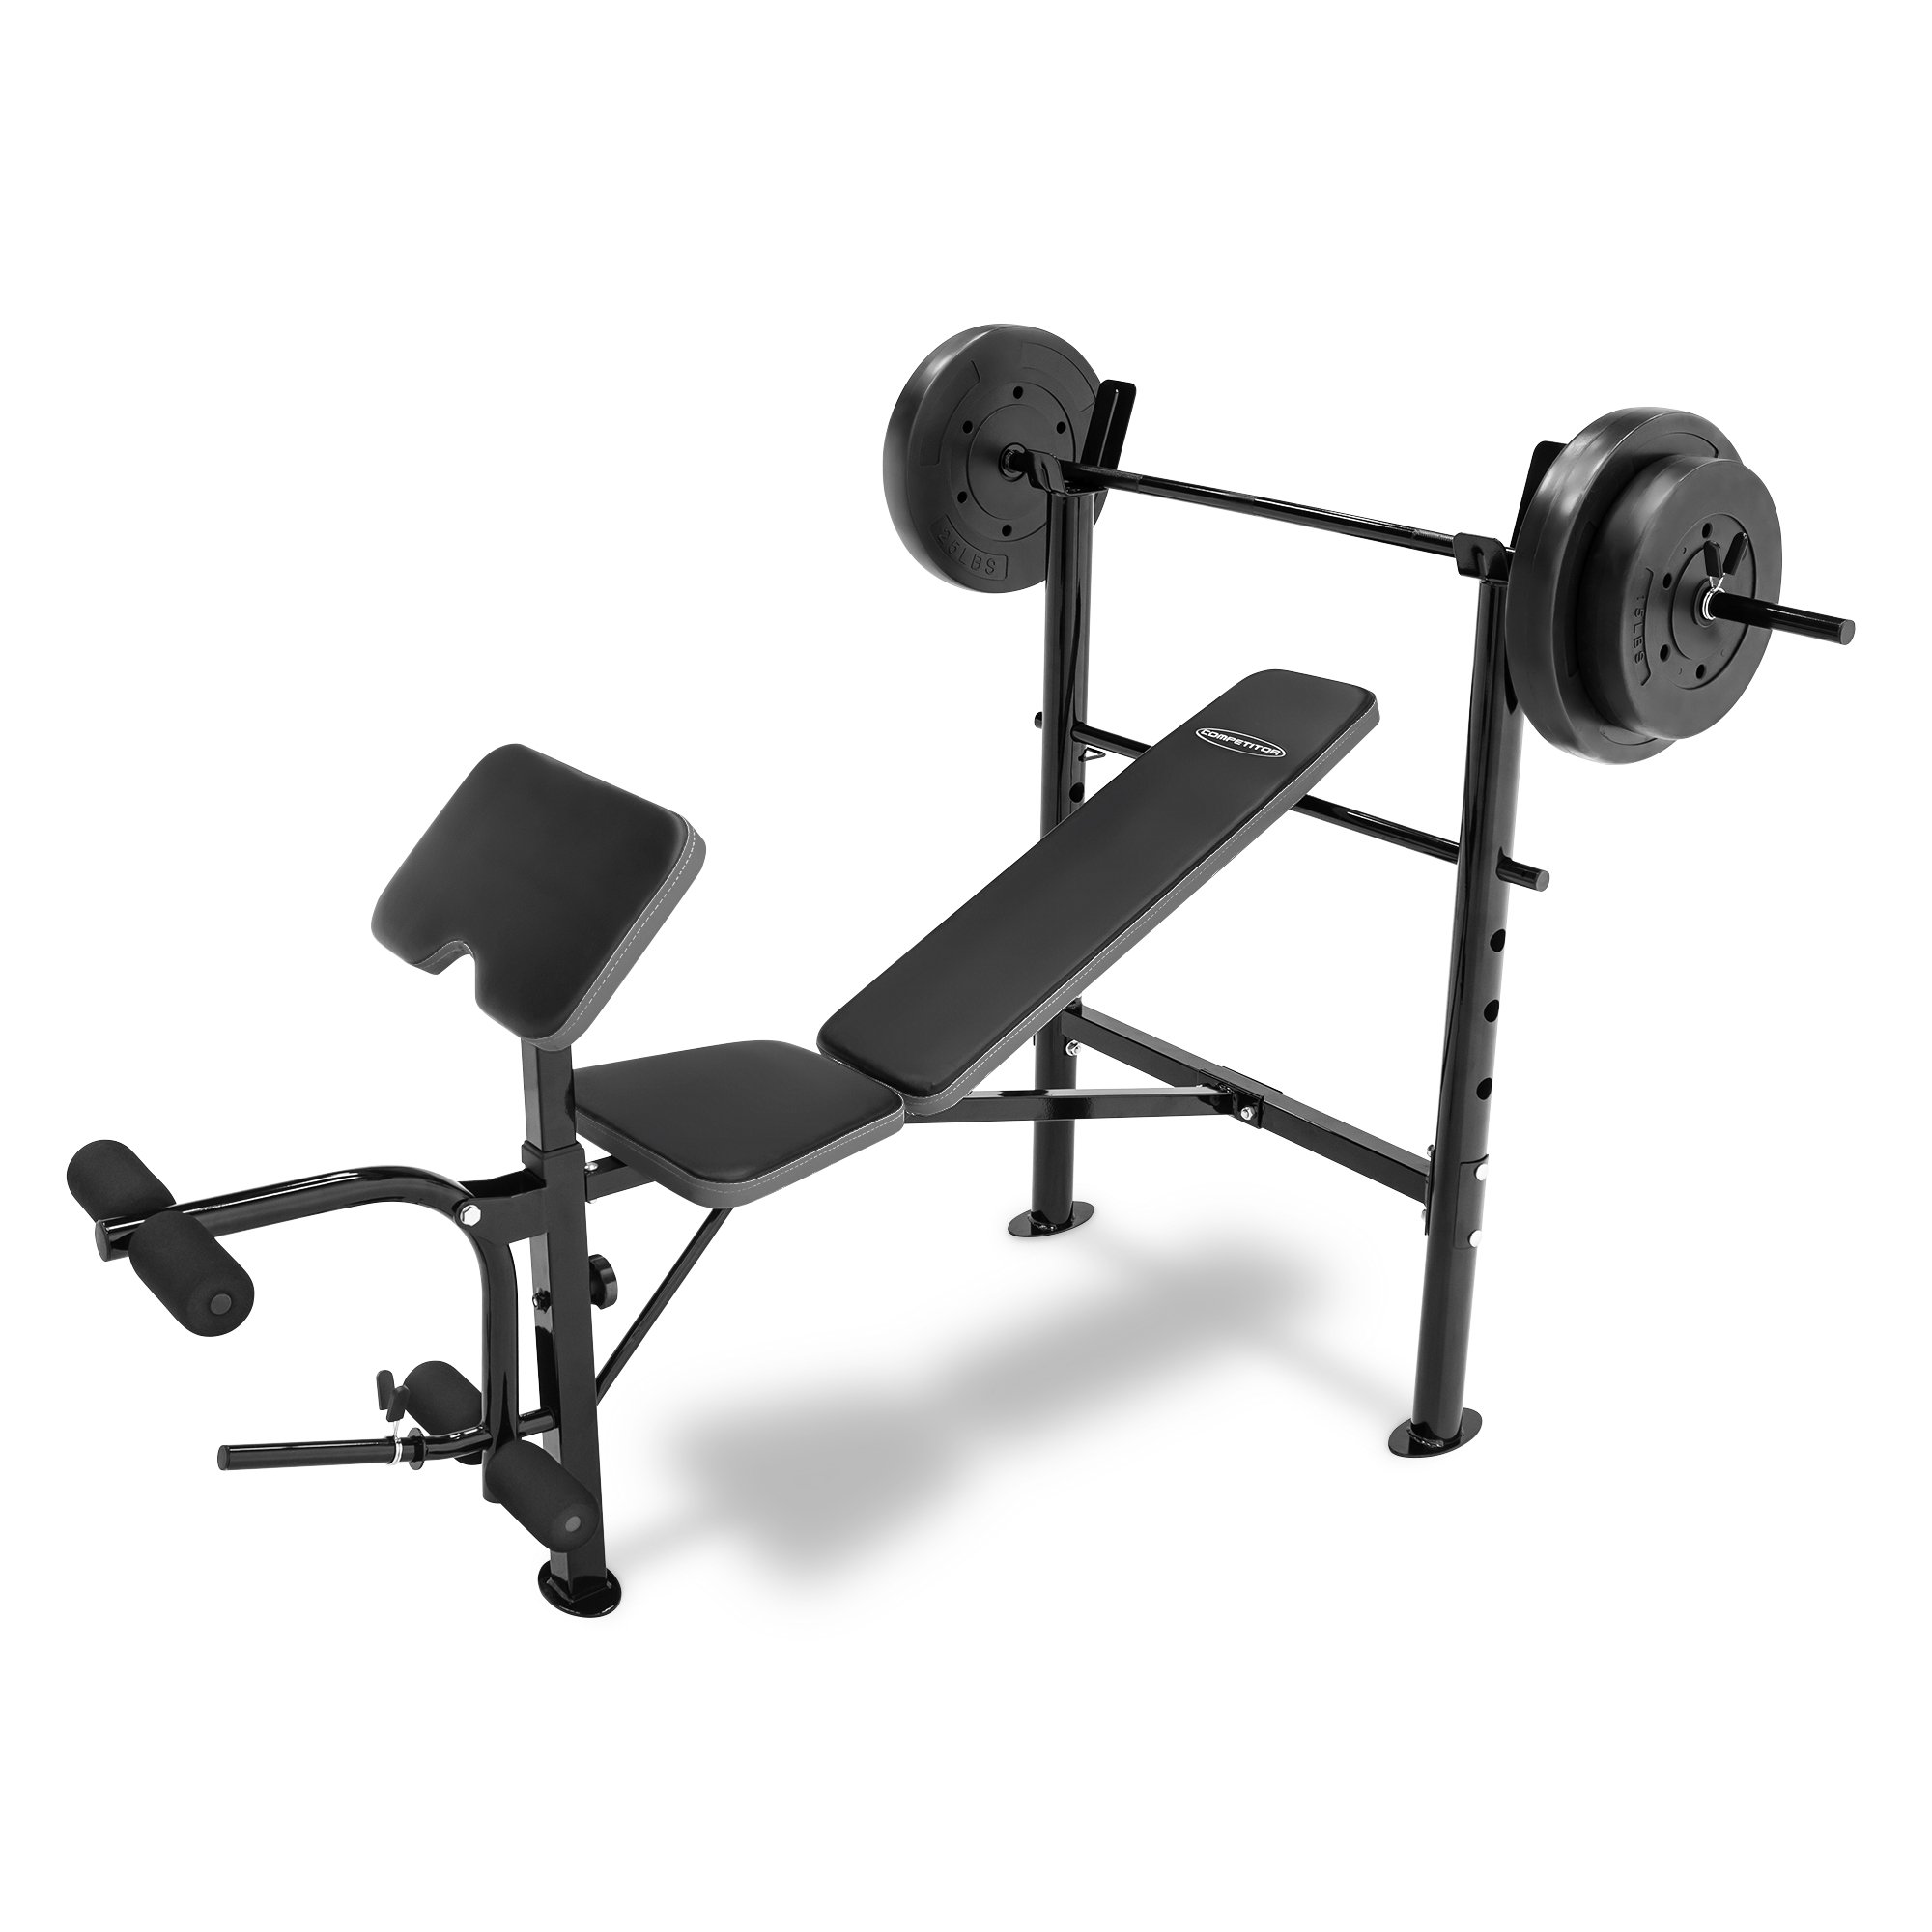 Marcy Competitor Workout Bench with 80 lbs weight Set Combo (black) - CB-20110 by Competitor